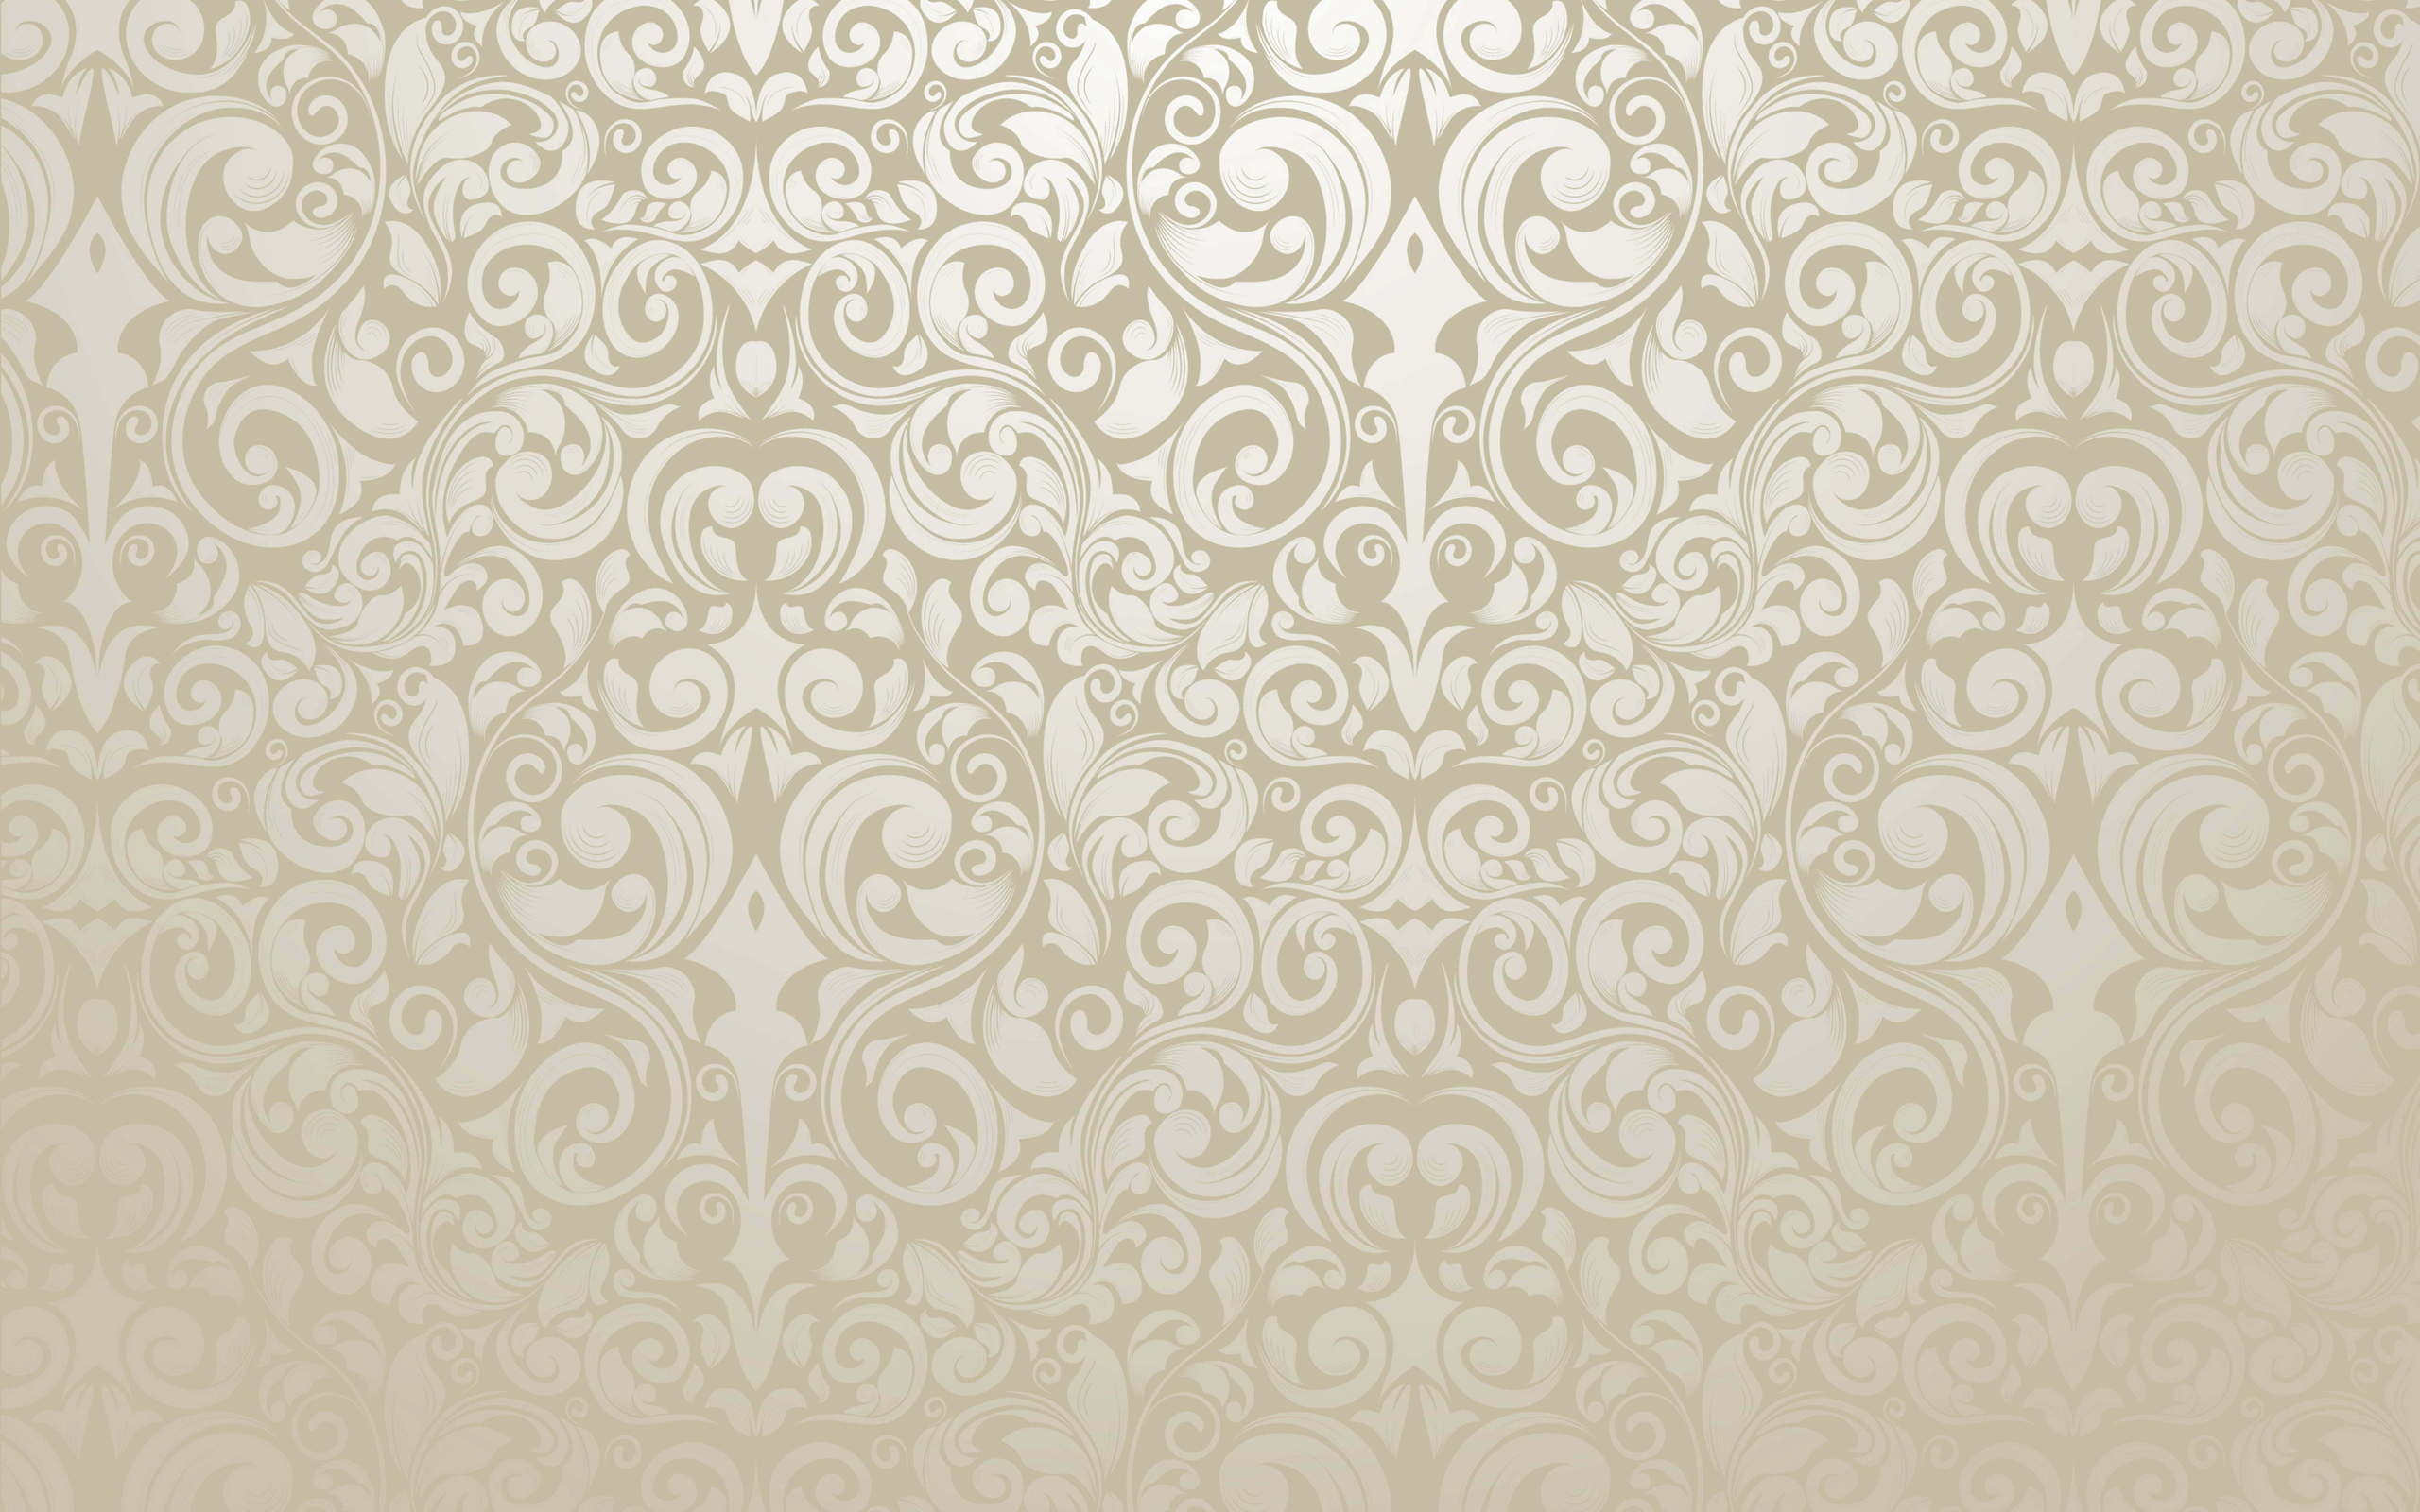 15 Ornate Patterns Textures Photoshop Patterns